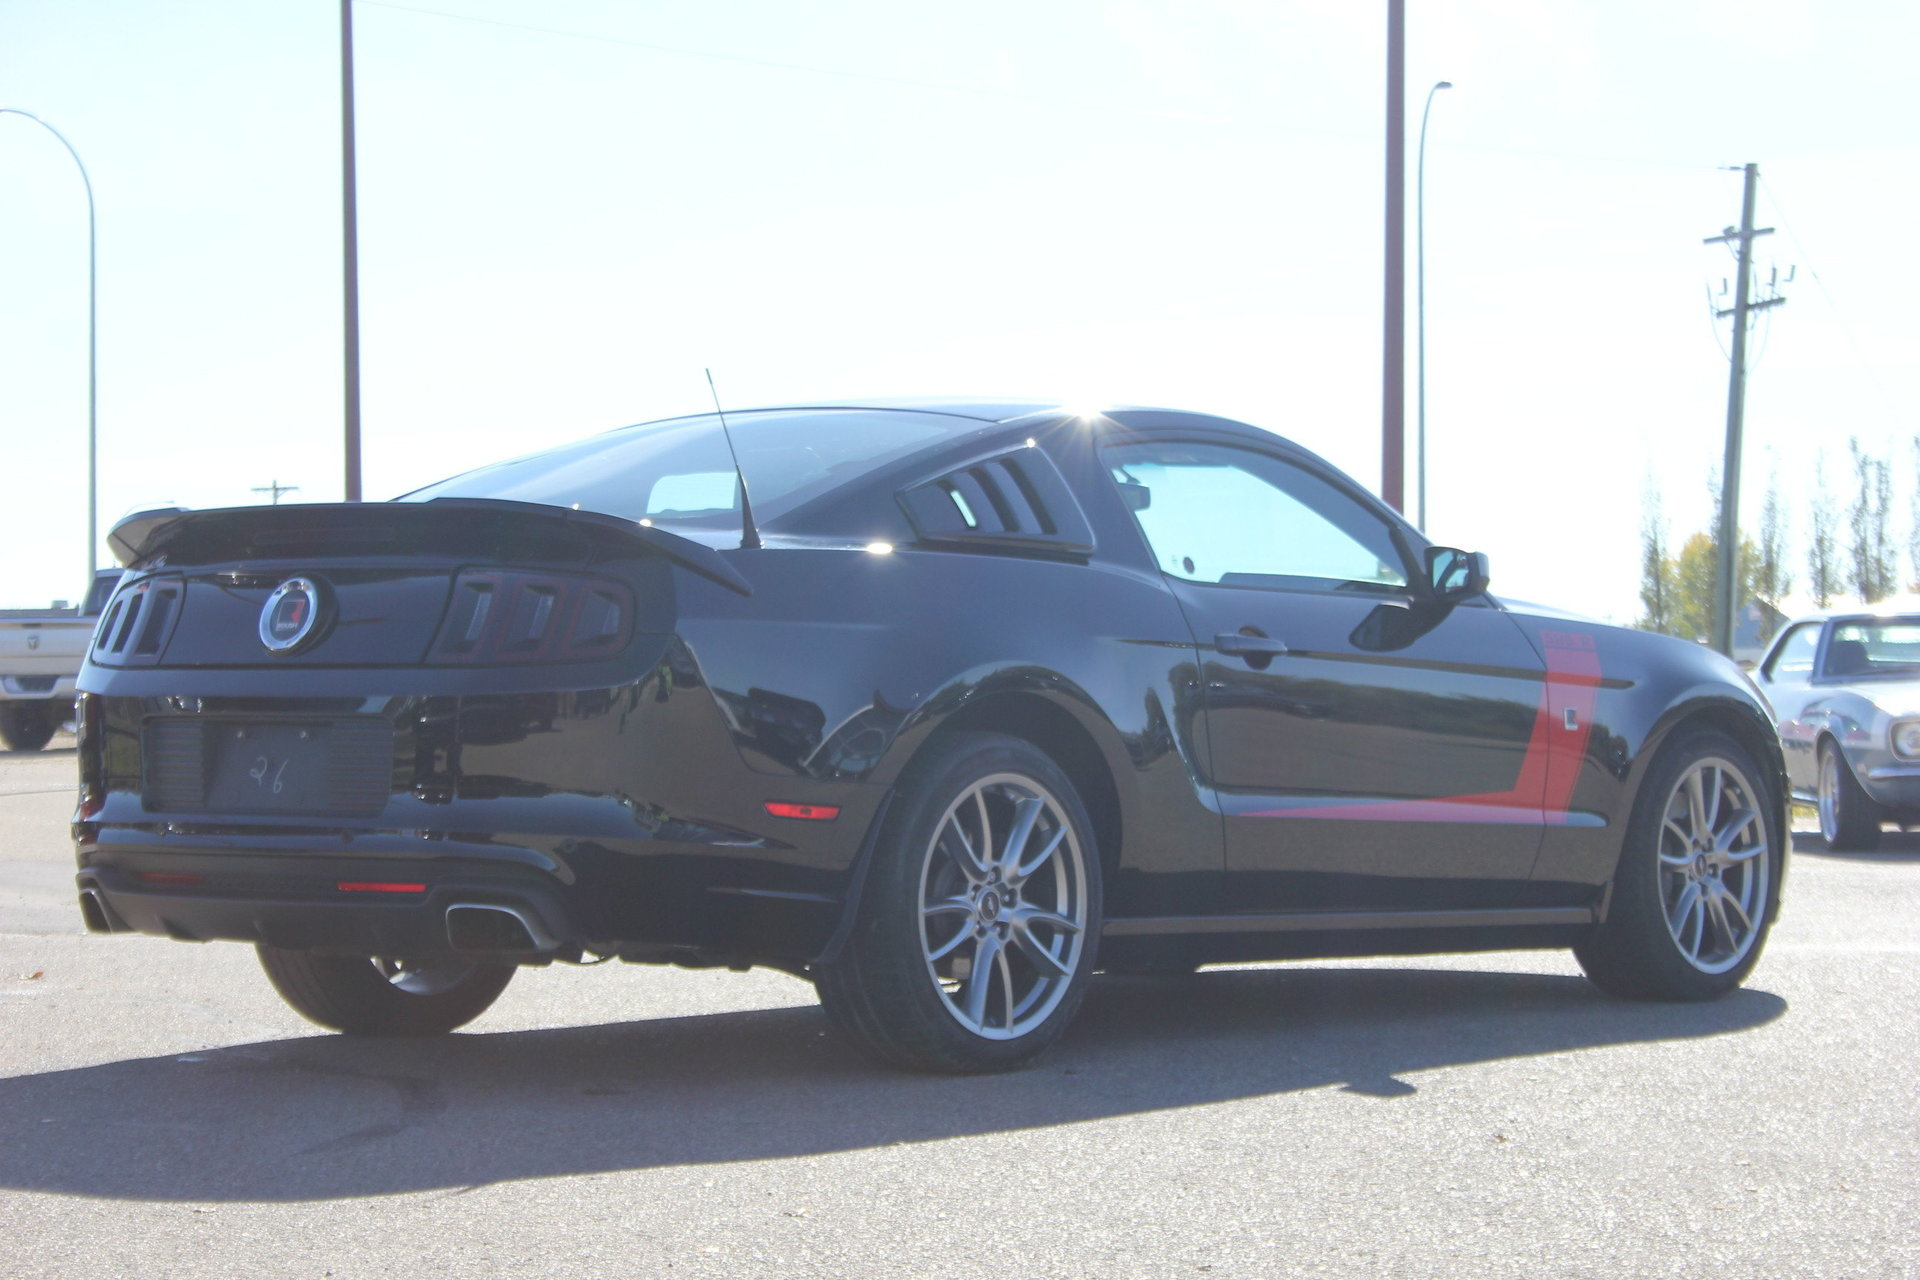 2013 ford mustang roush 585r supercharged for sale. Black Bedroom Furniture Sets. Home Design Ideas